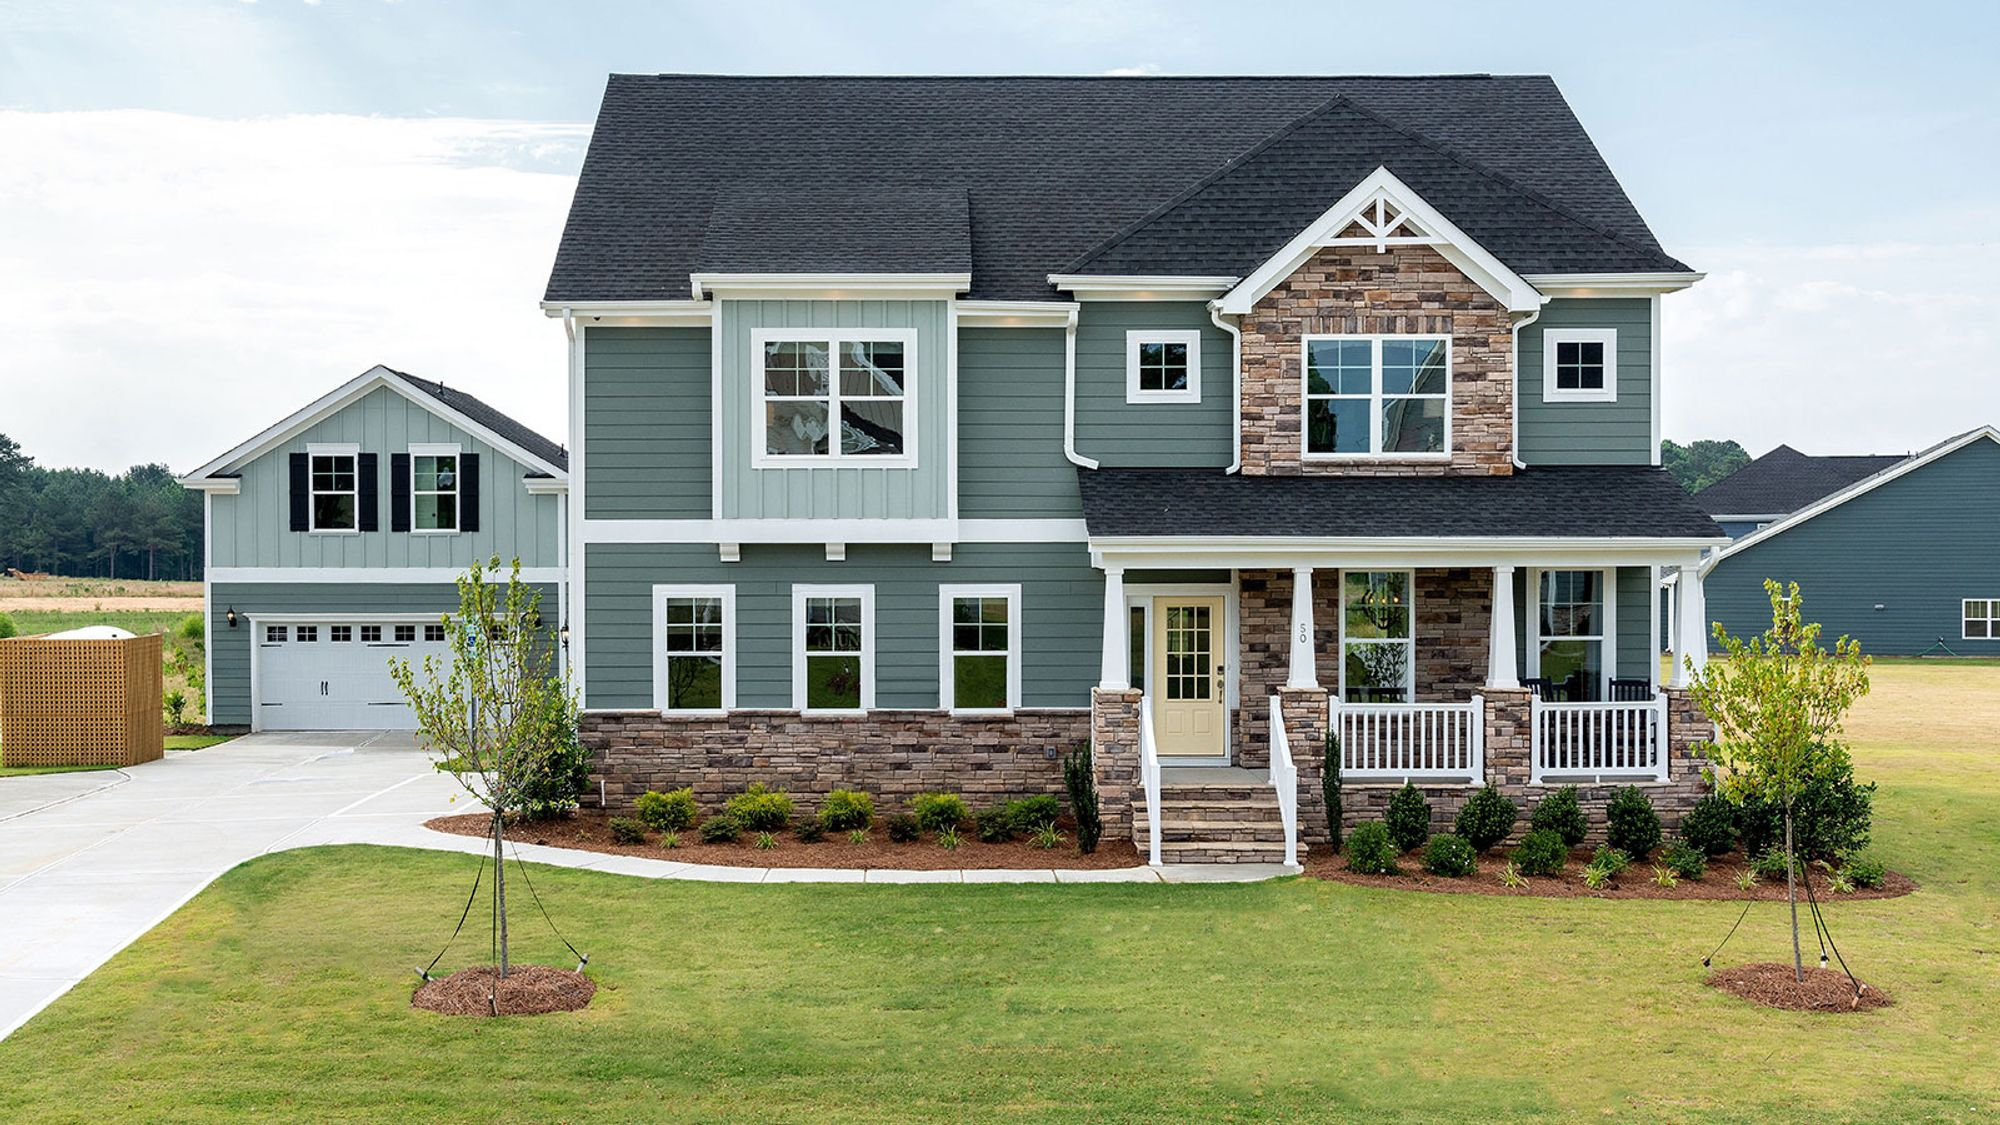 New home in Clayton NC with green exterior